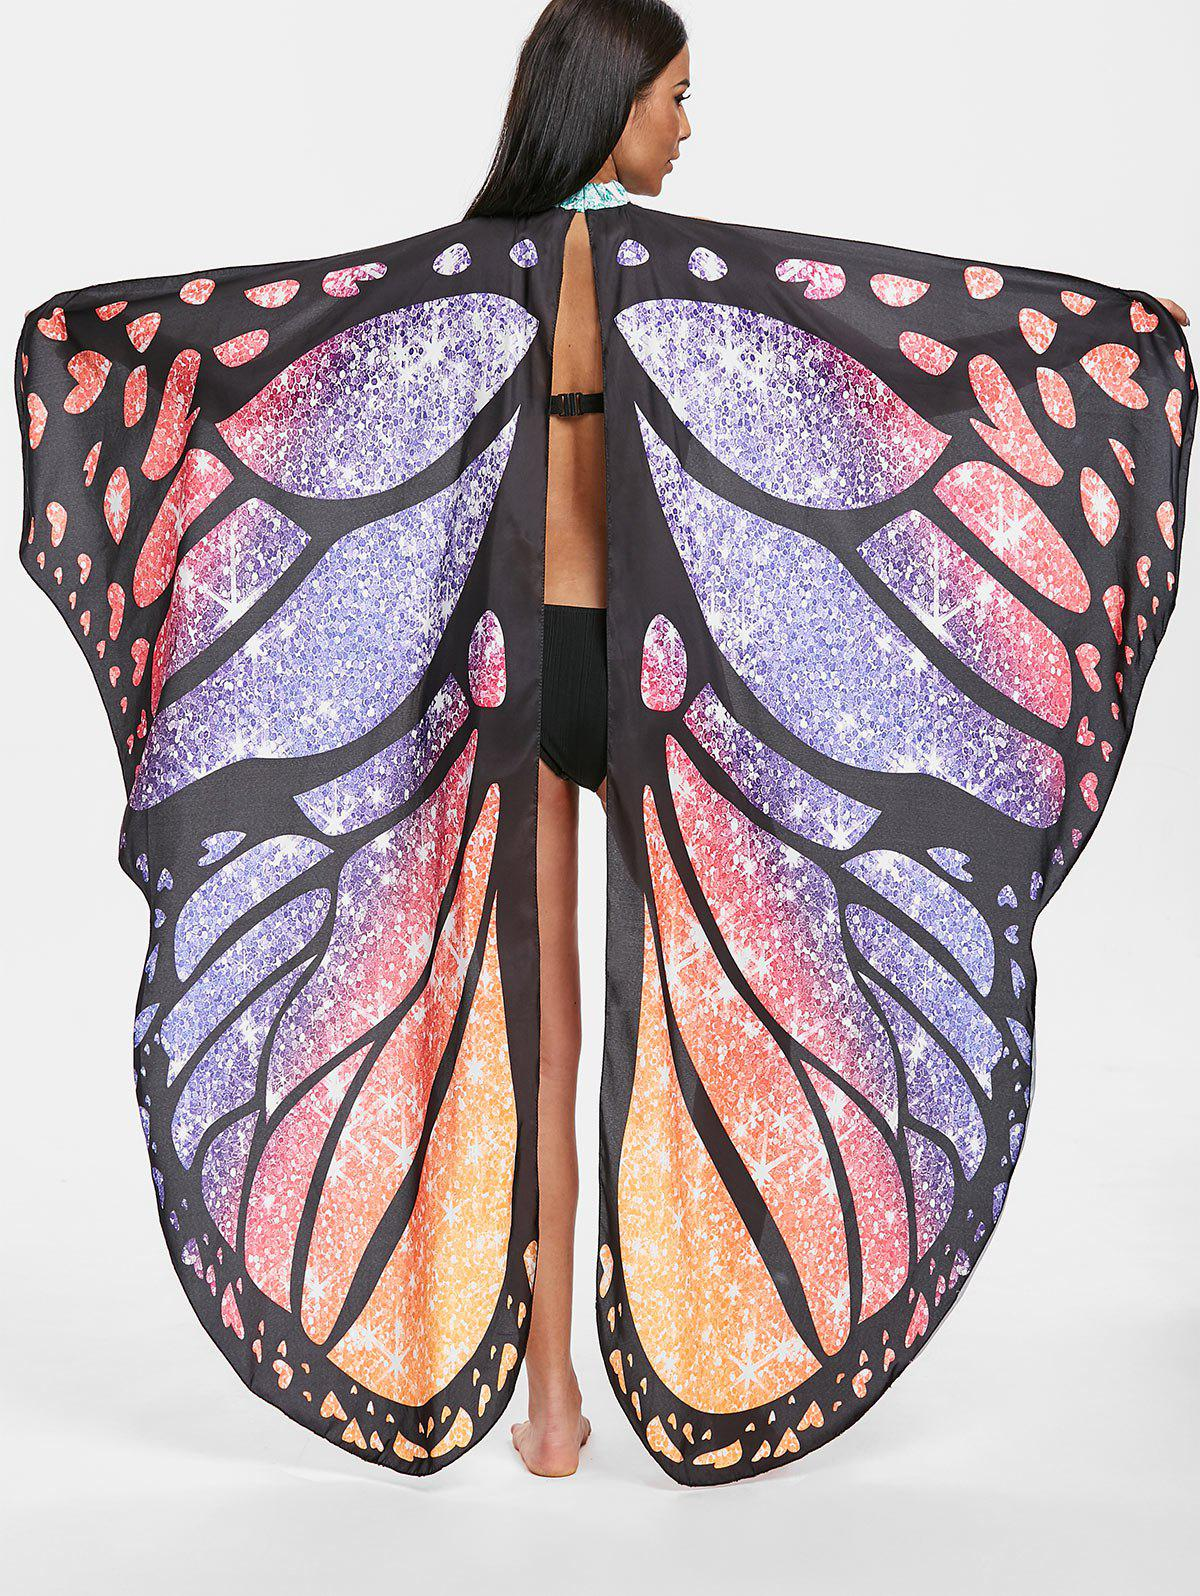 Butterfly Wing Beach Cover Up Multi Taille Unique